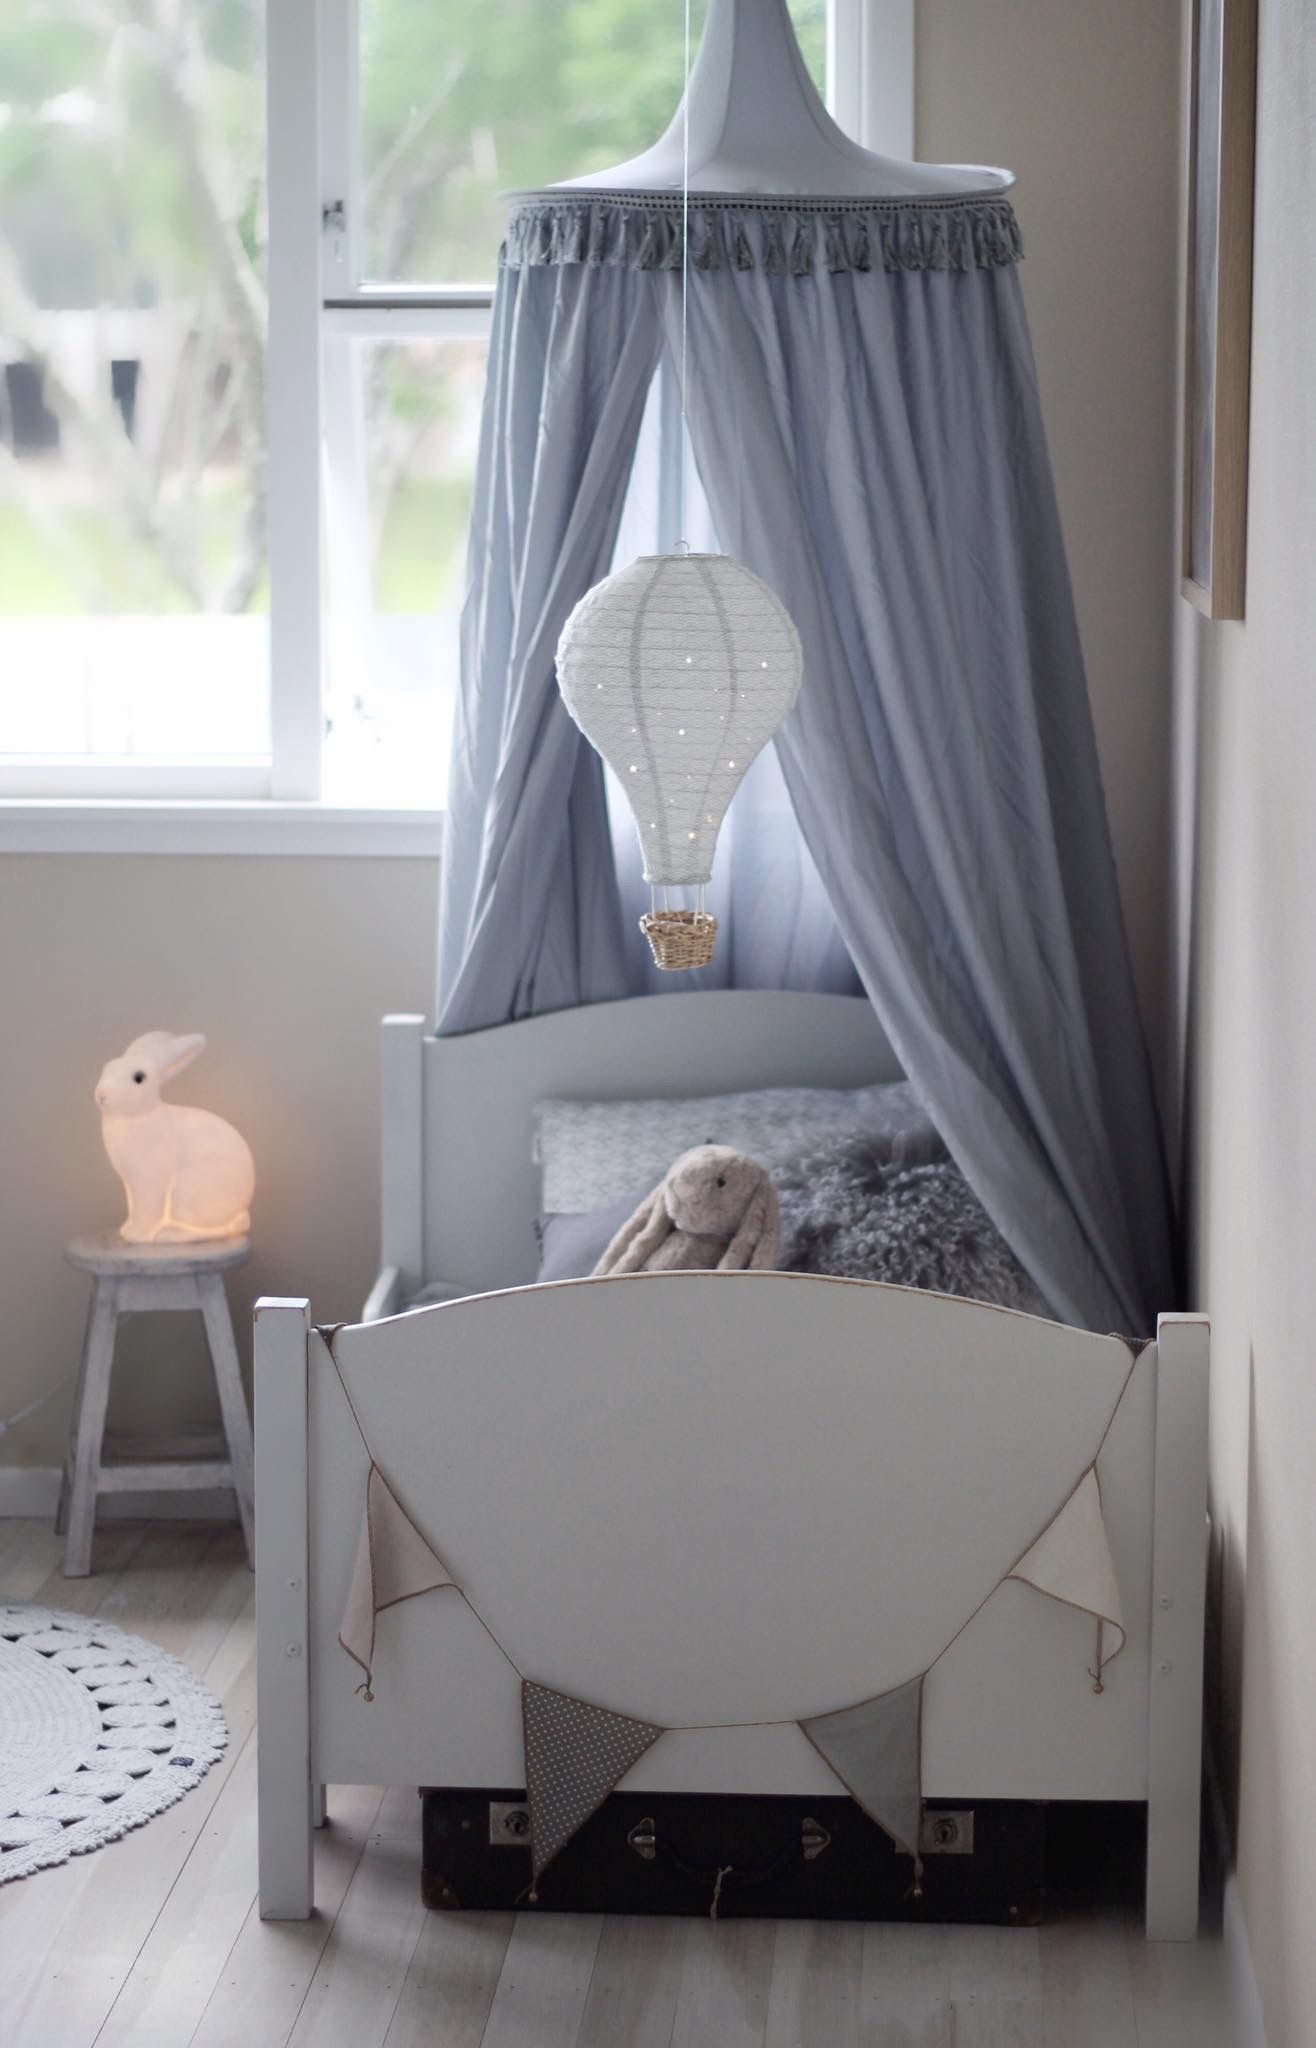 Kids playroom canopy - Beautiful Handmade Crochet Rugs And Gorgeous Kids Play Canopies We Have The Perfect Kids Canopy And Rug To Fit Any Style